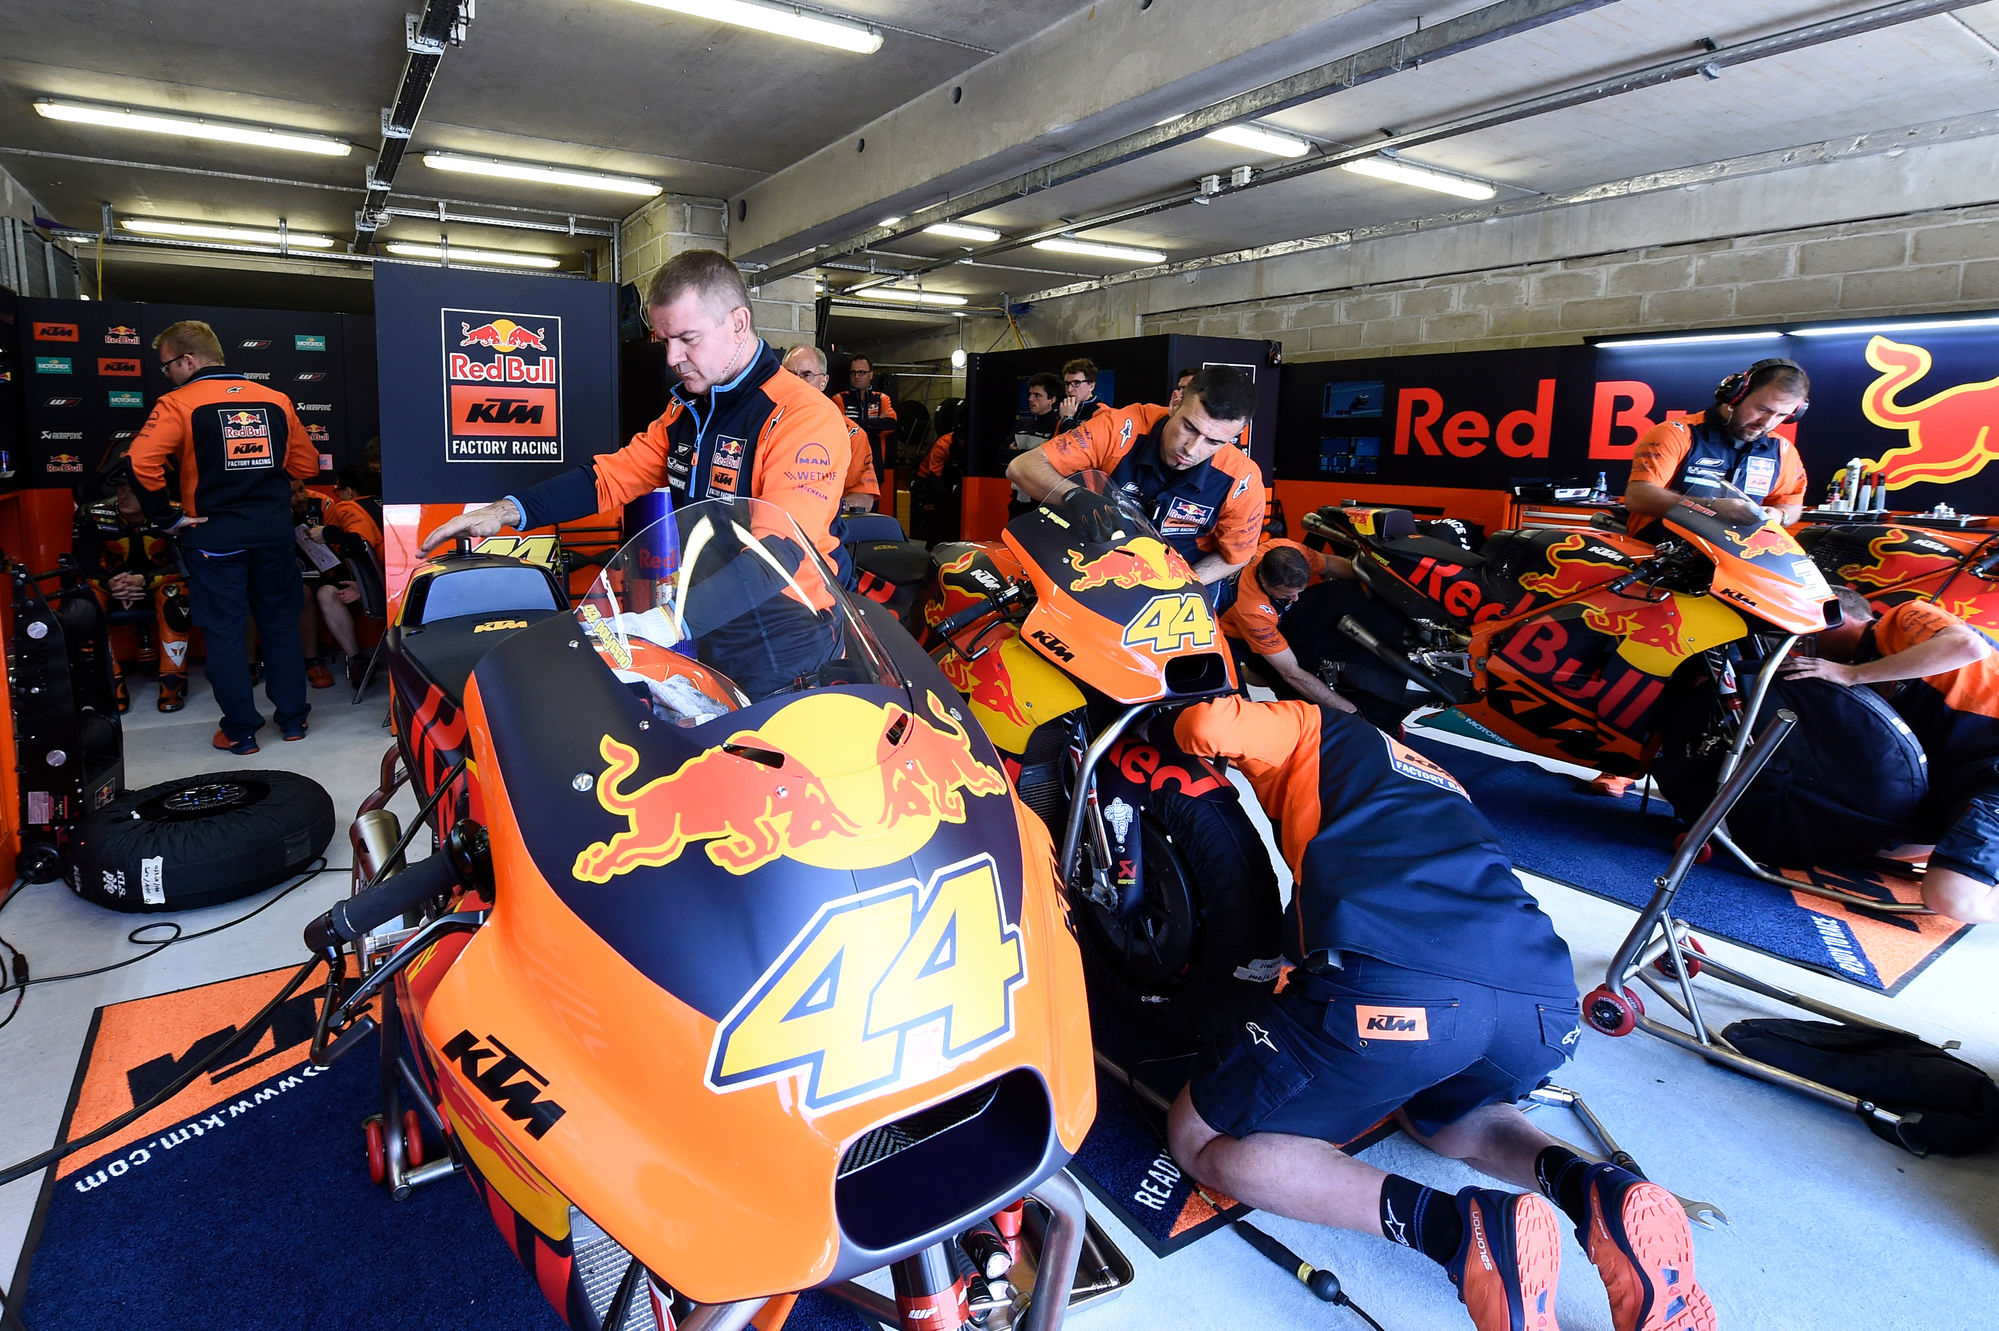 KTM VIP PACKAGE: MotoGP 2017 – RIDE KTM